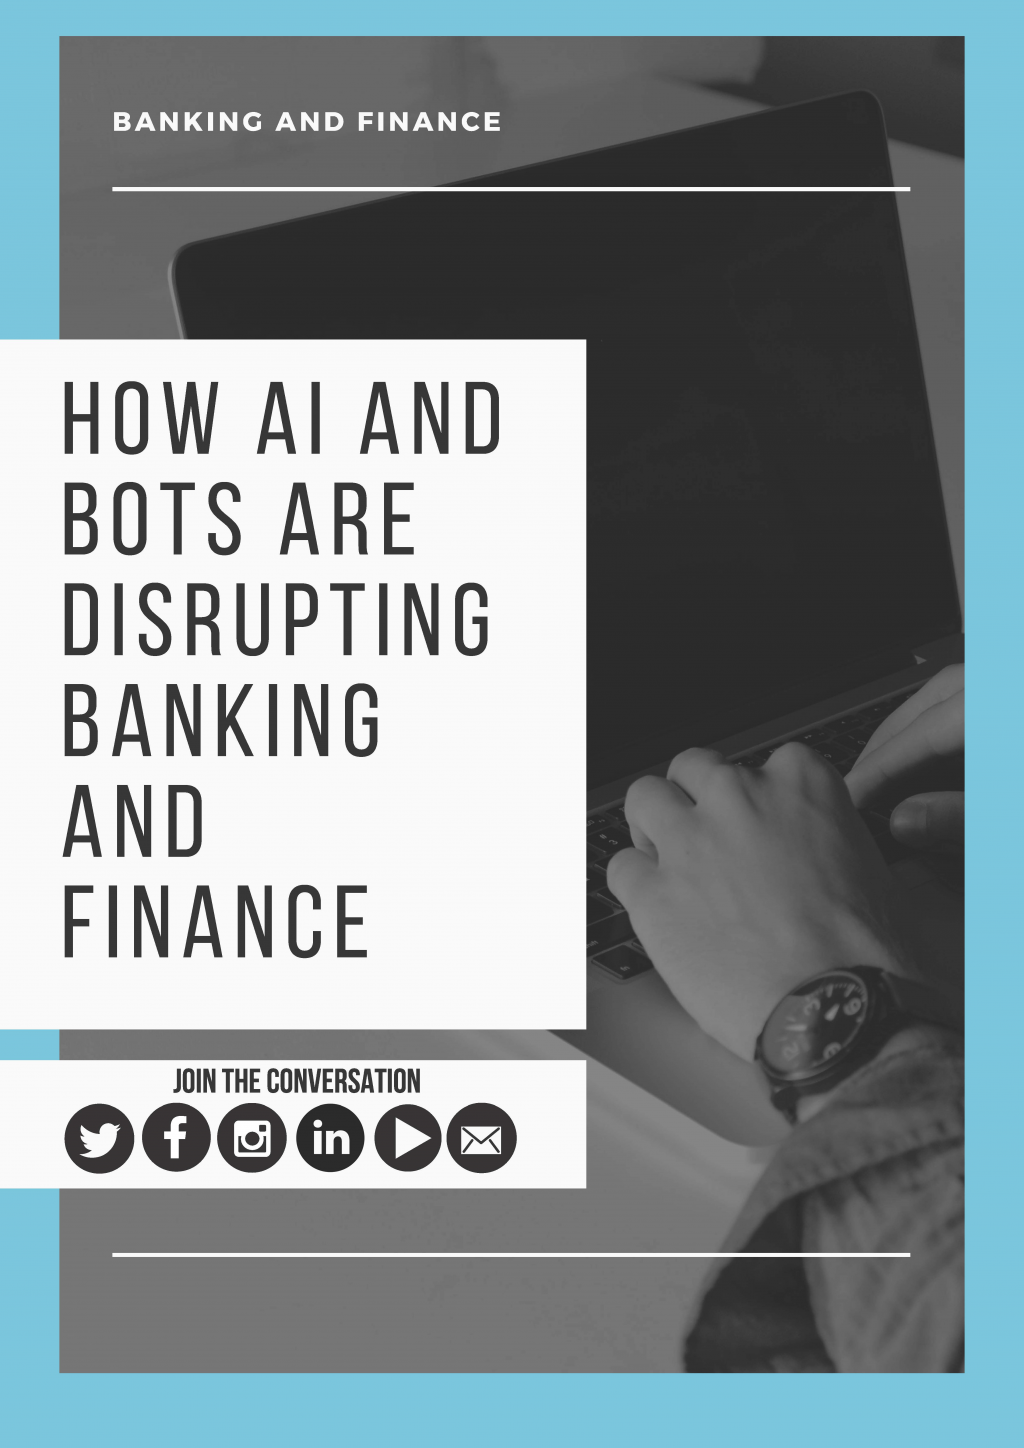 Read How AI and Bots are Disrupting the Banking Industry